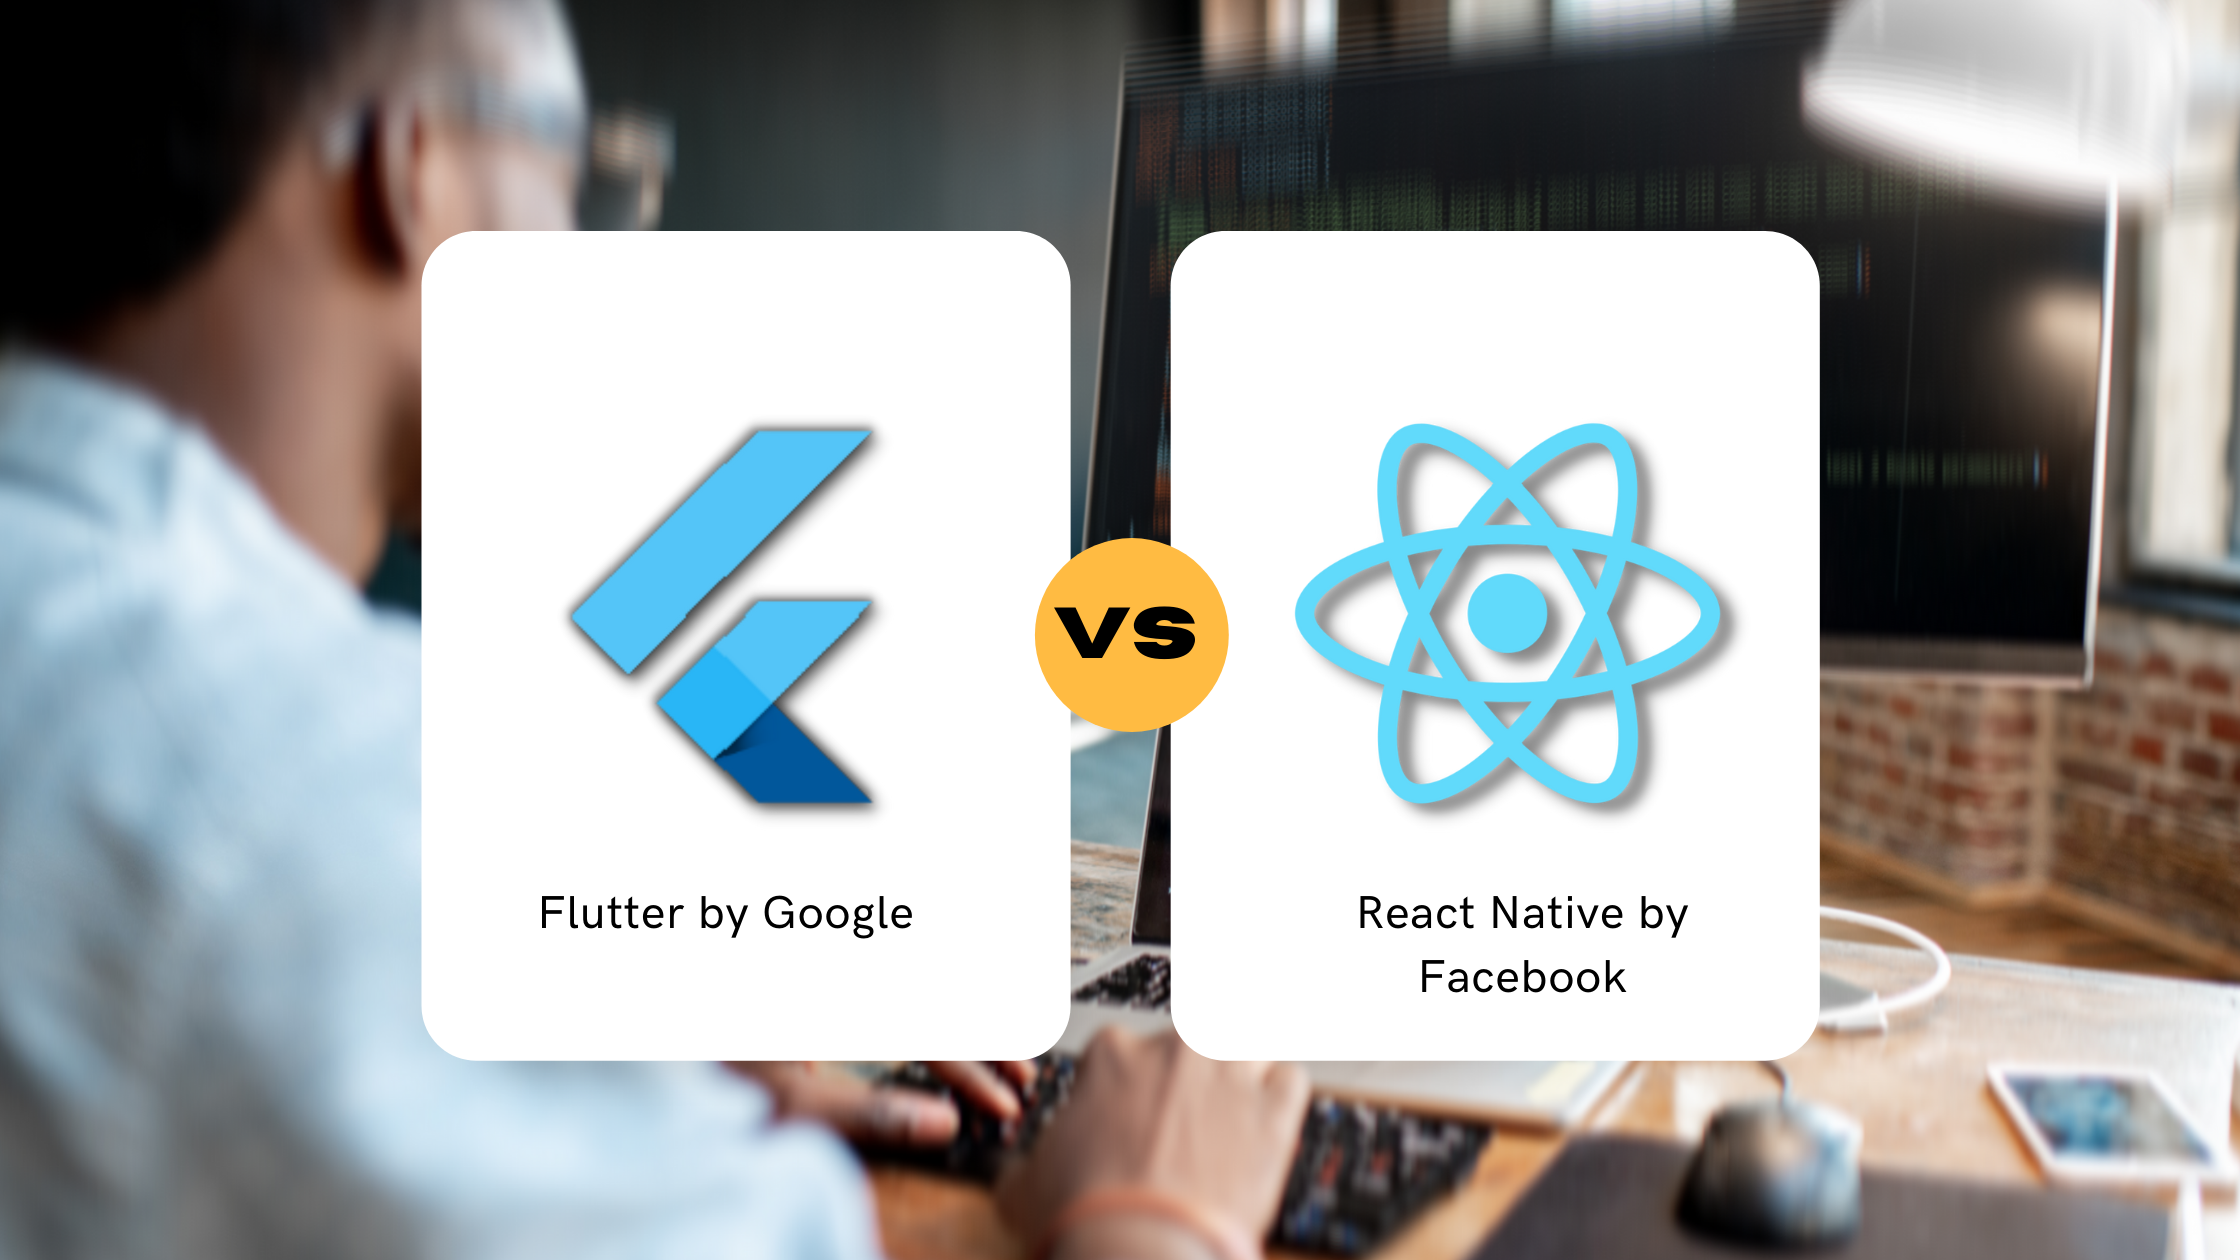 React Native and Flutter are both cross-platform development frameworks that can be used for developing mobile apps. Which one should you choose? Compare the features and decide what's best for you.